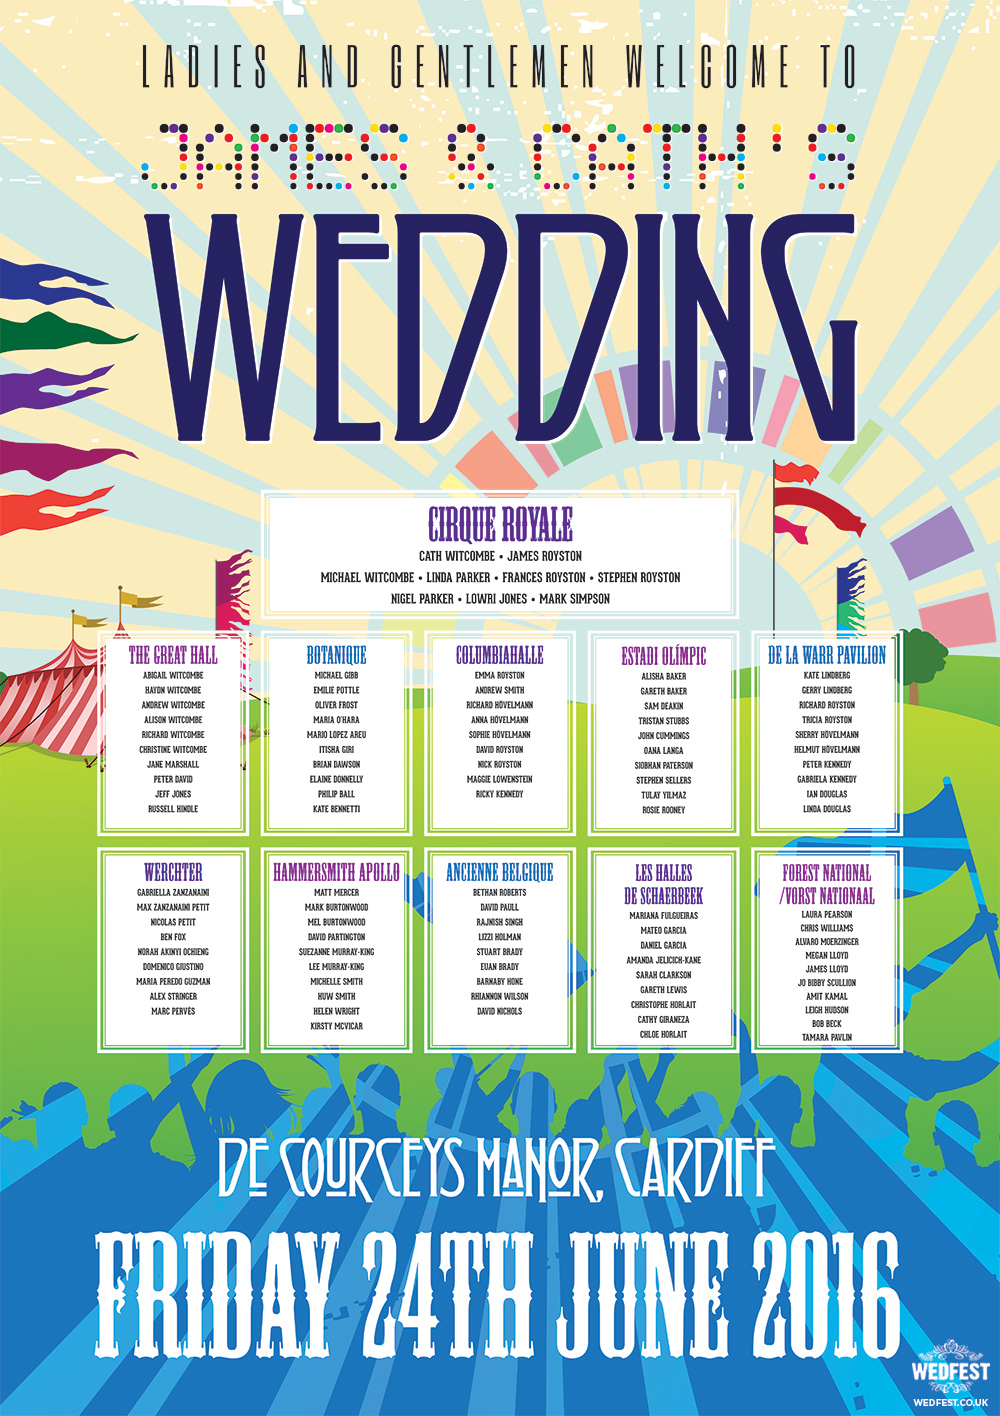 De Courceys Manor Cardiff Wedding Table Seating Plan